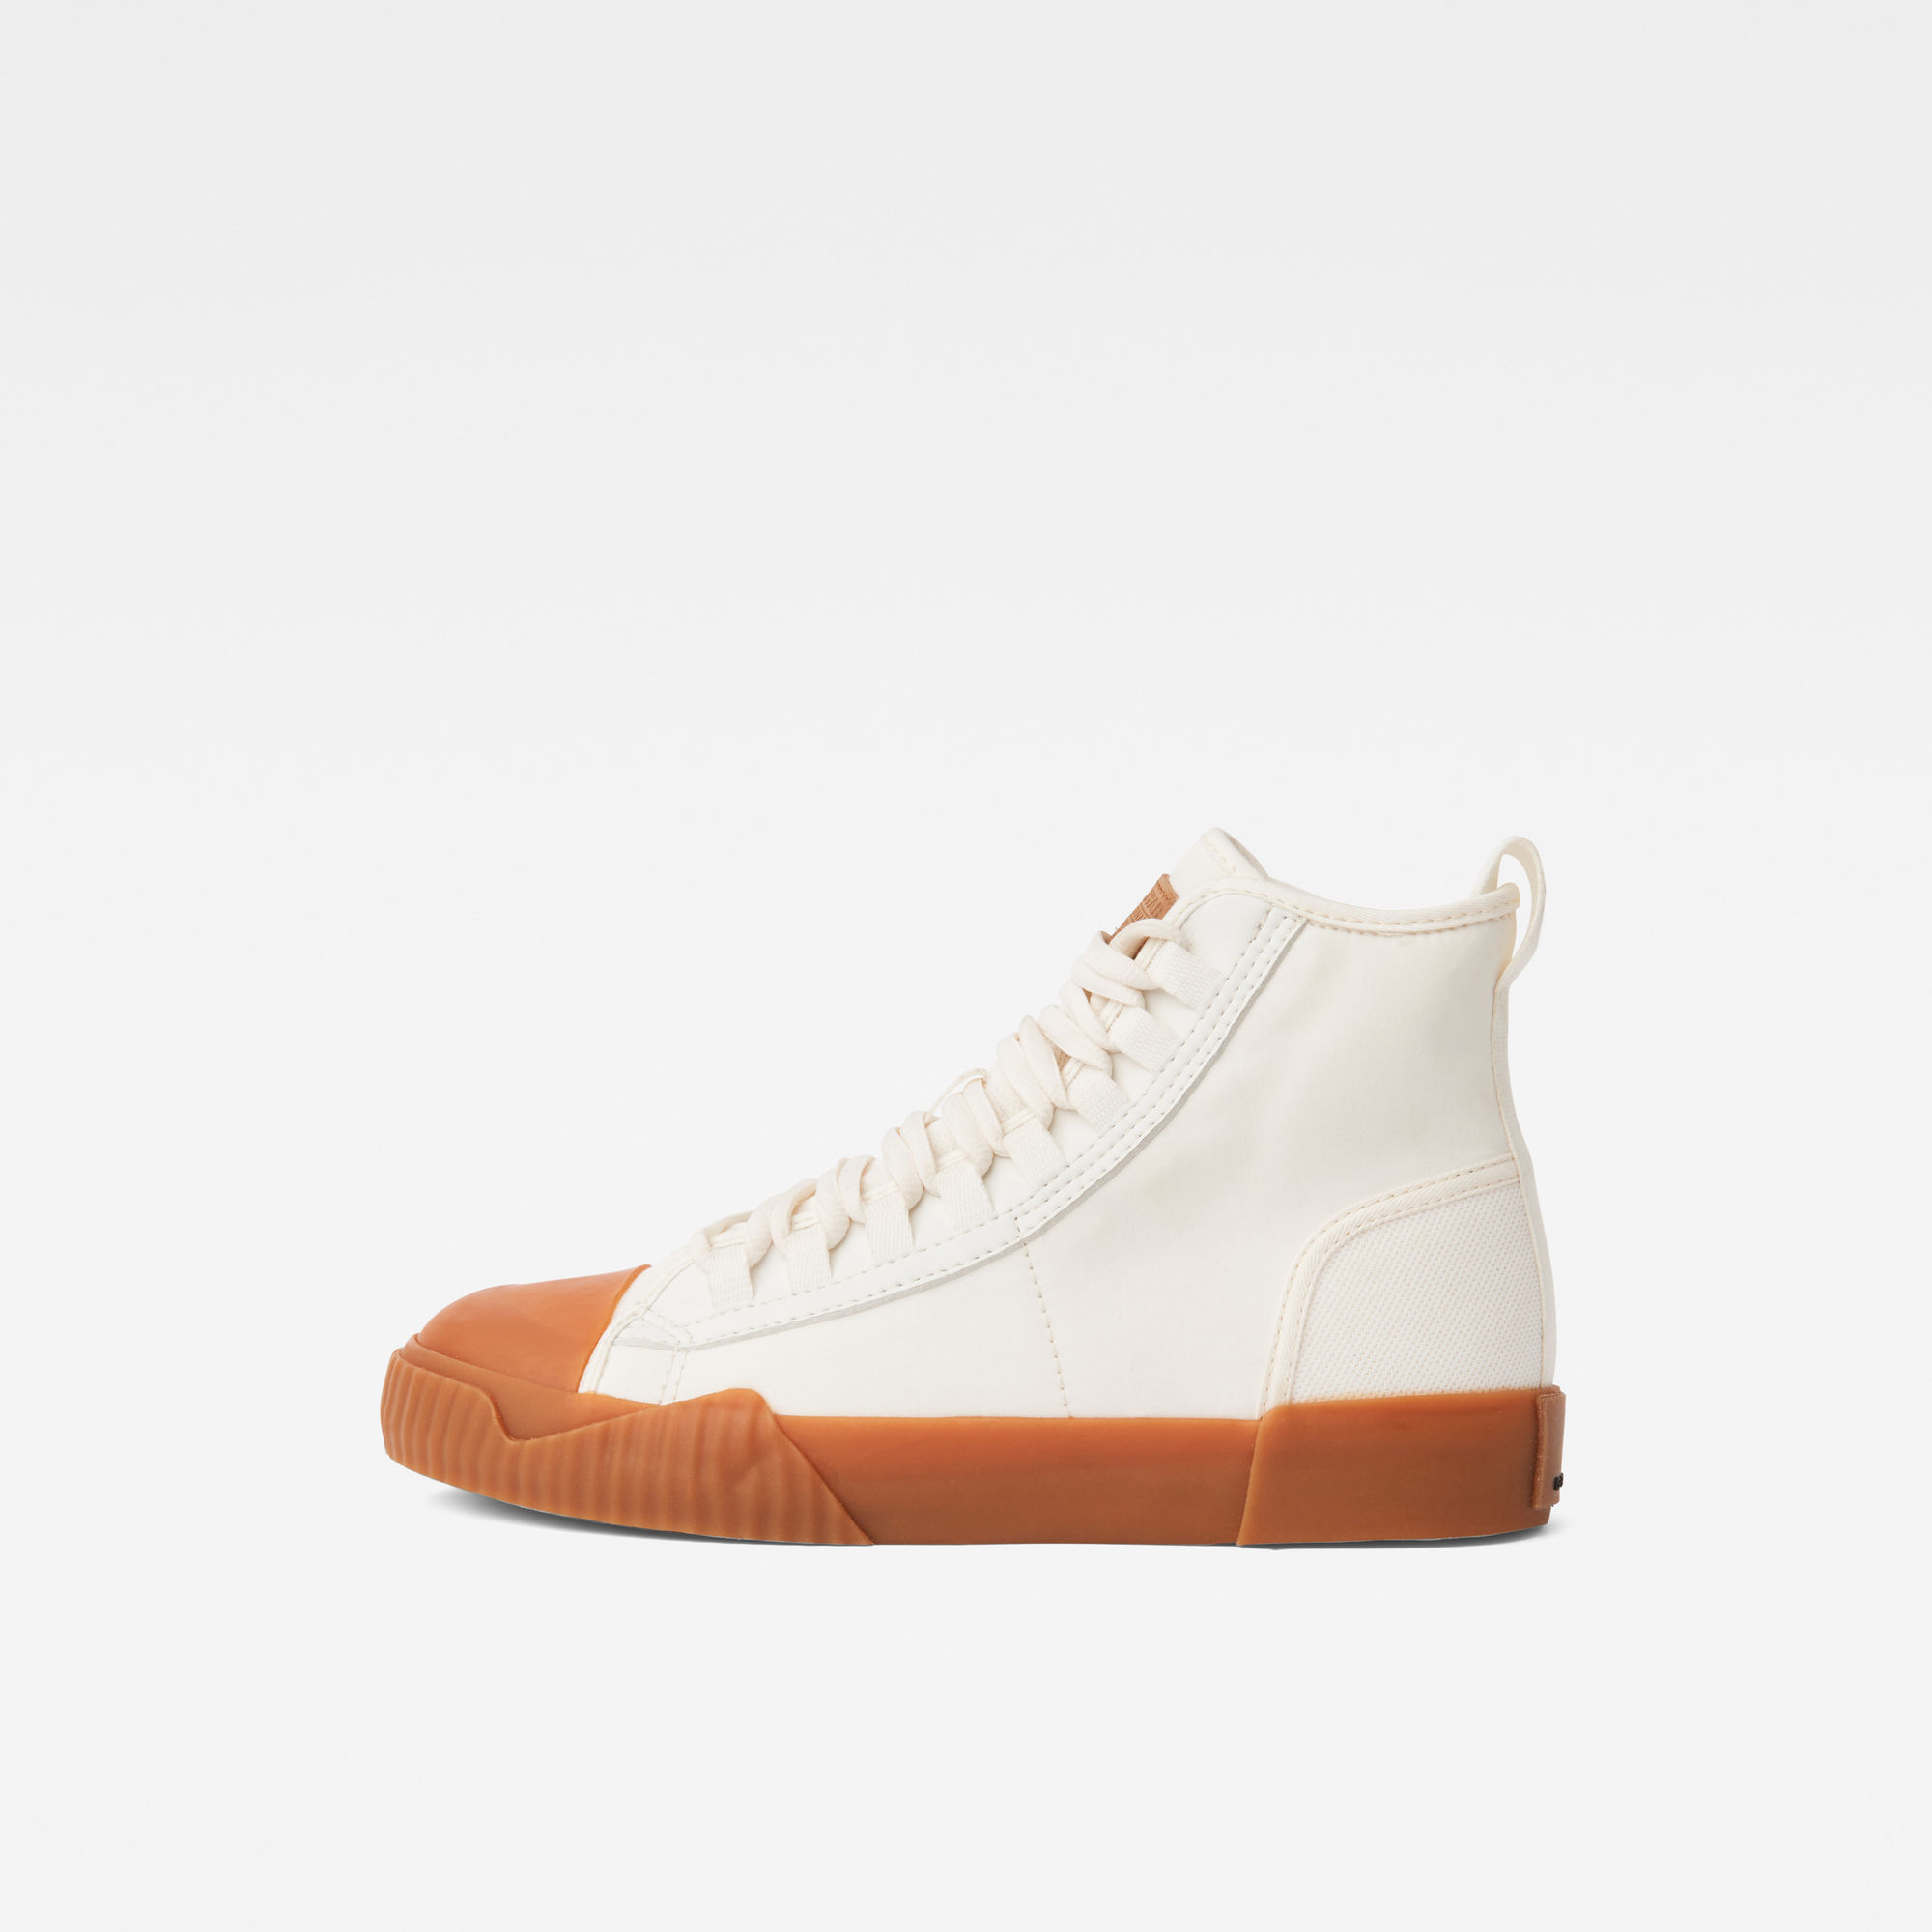 Image of G Star Raw Rackam Scuba Mid Sneakers